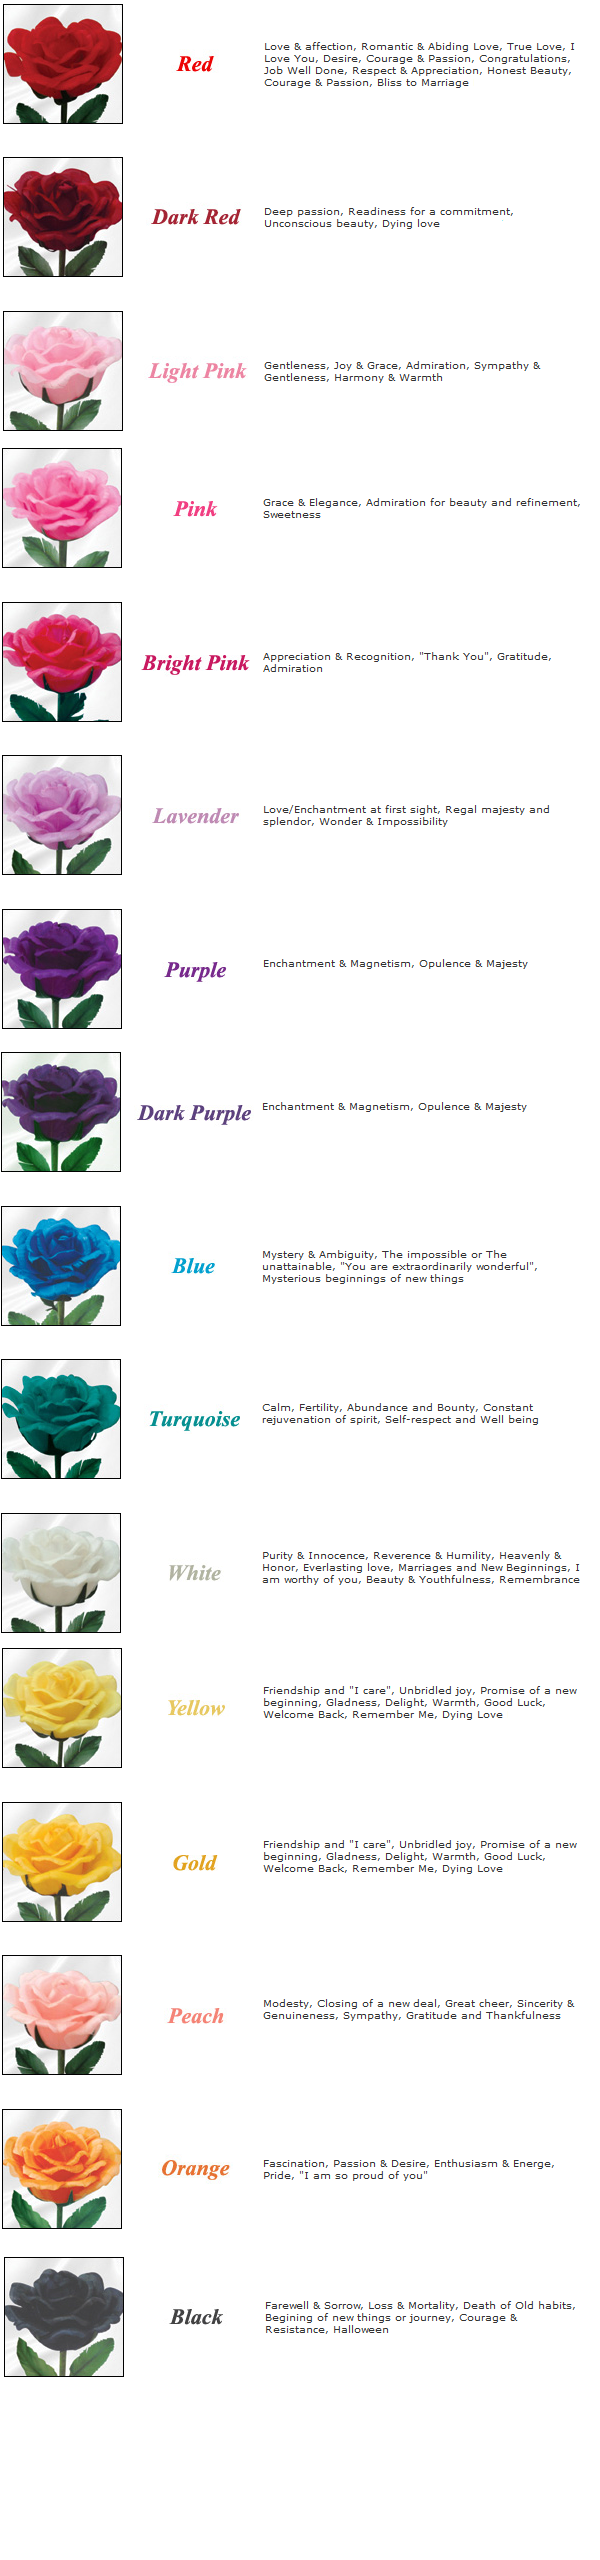 Lavender Meaning Of Flowers Love Symbolism Lavender Quotes Lavender Meaning Wedding Flowers